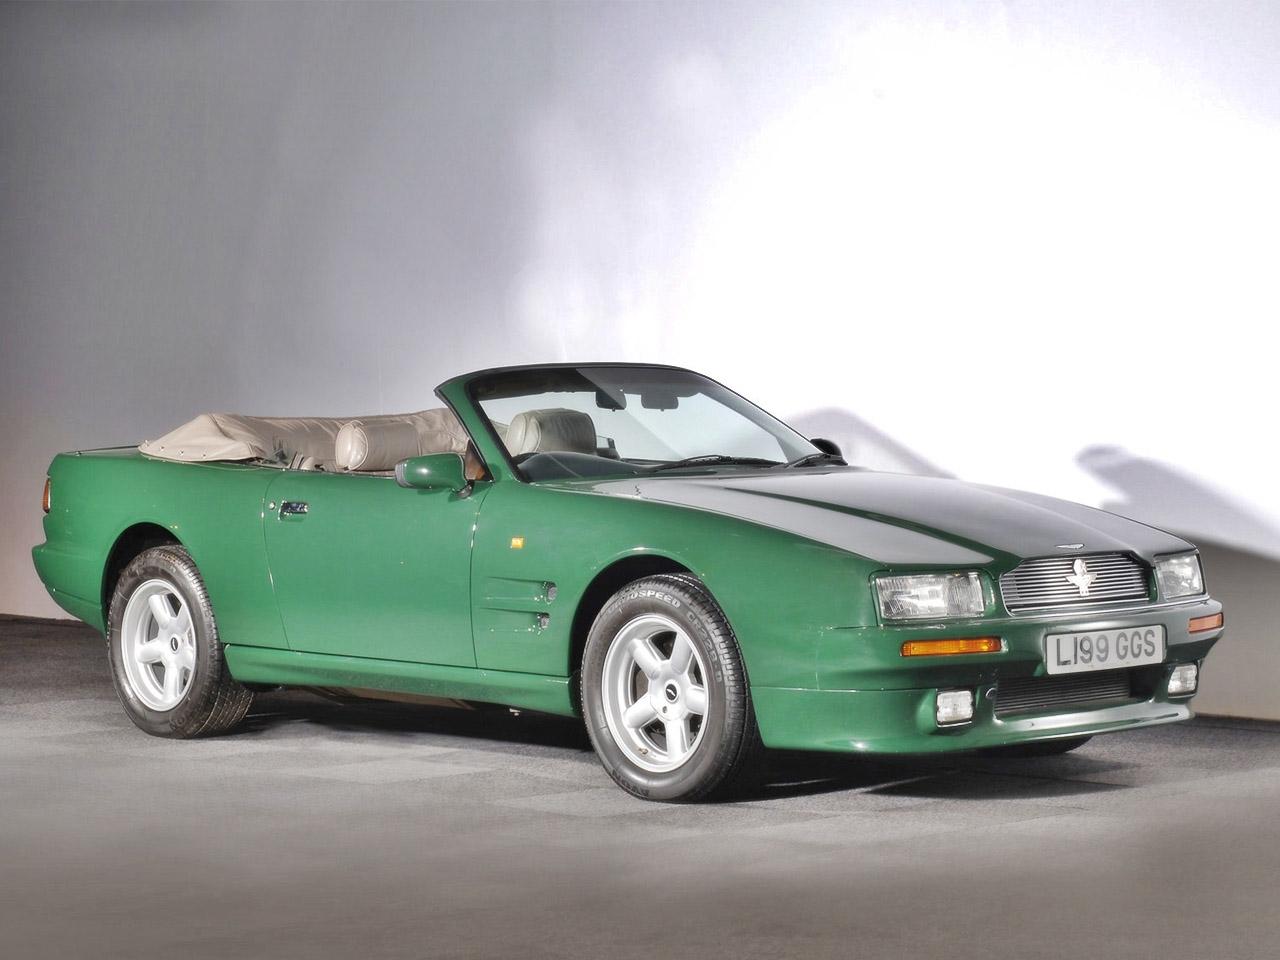 Cars aston martin virage volante 1992